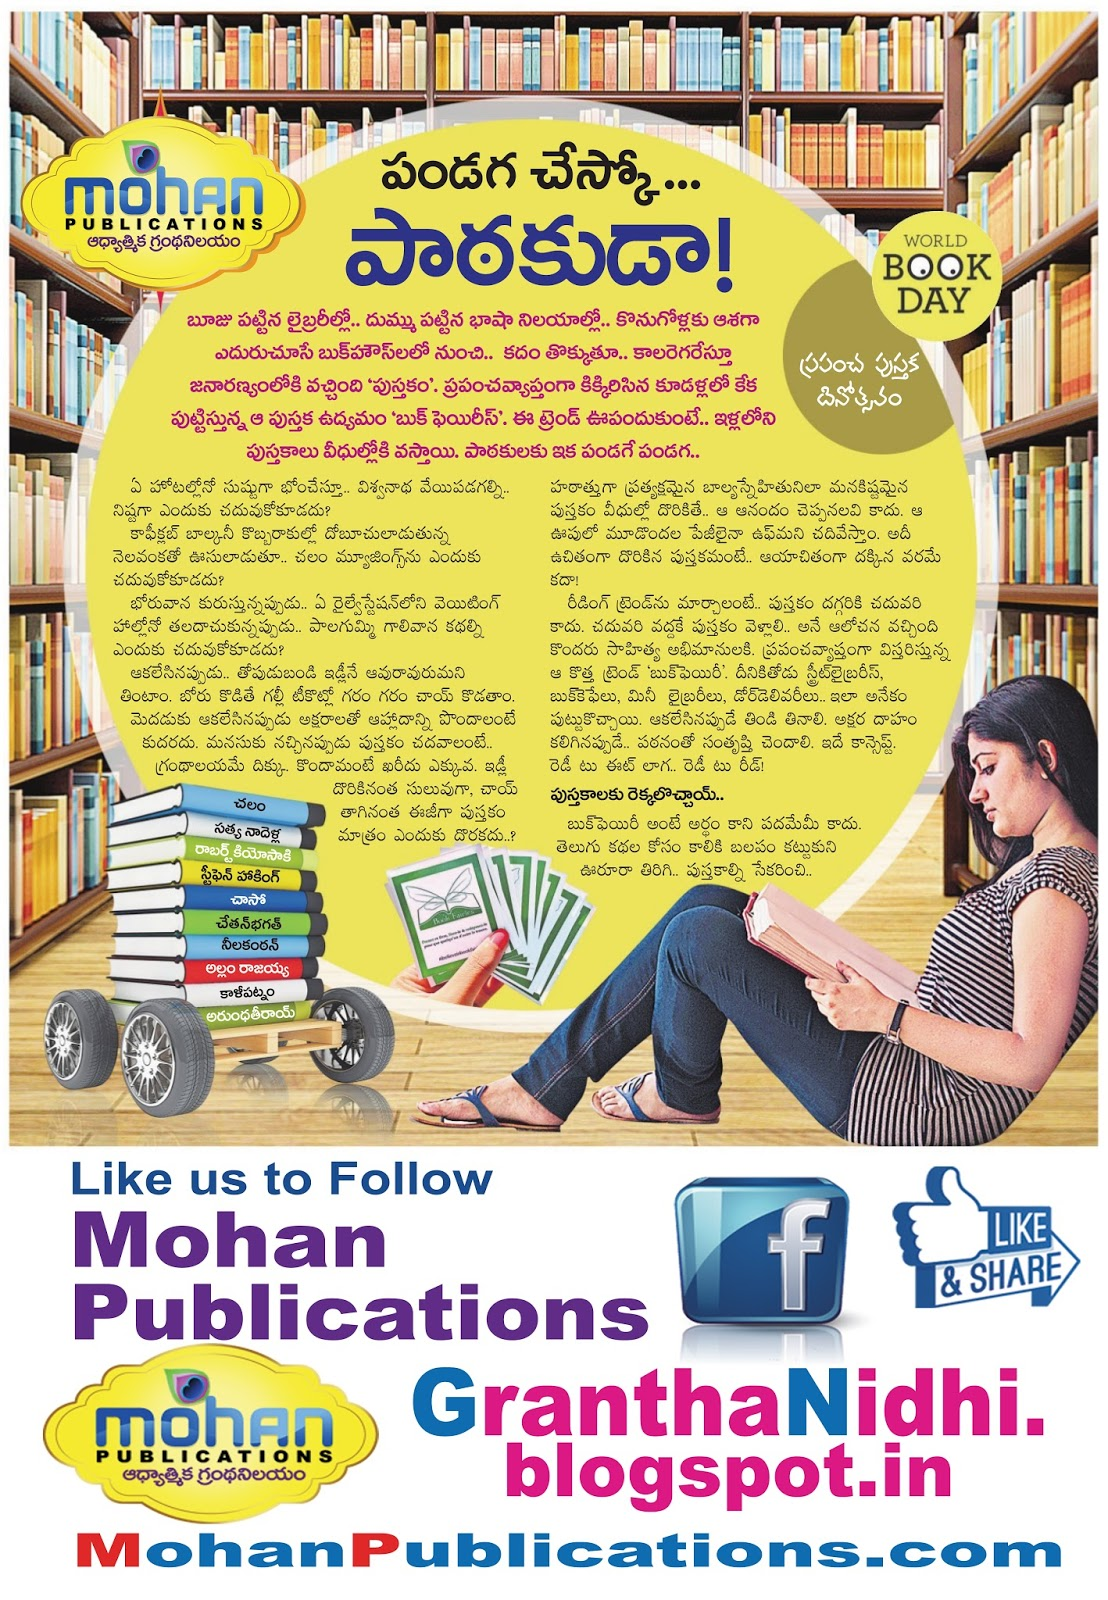 ప్రపంచ పుస్తక దినోత్సవం World Book Day world book day world book and copyright day books day publishers publications poets writers story writers book in rajahmundry book publishers in rajahmundry publishers in rajahmundry book publications in rajahmundry buy books in rajahmundry old books in rajahmundry old books buy in rajahmundry hindu books bhakthi pustakalu bhakti pustakalu bhakthipustakalu bhaktipustakalu